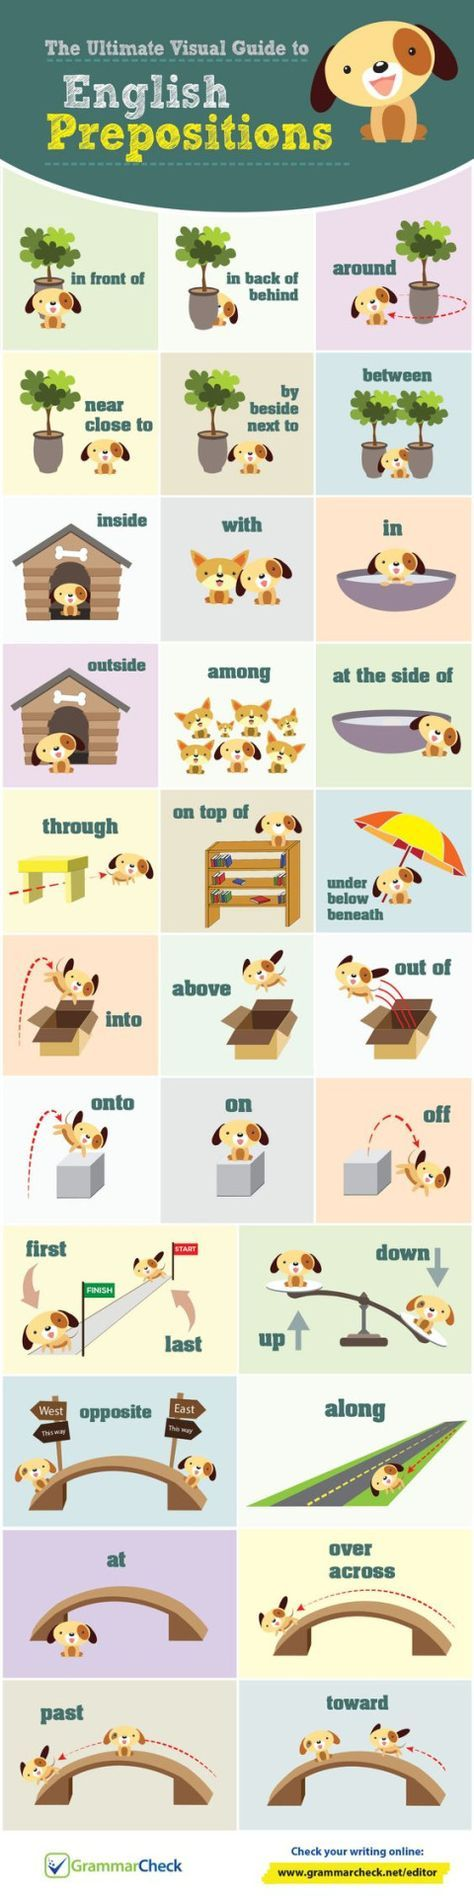 The ultimate guide in English PREPOSITIONS #learnenglish